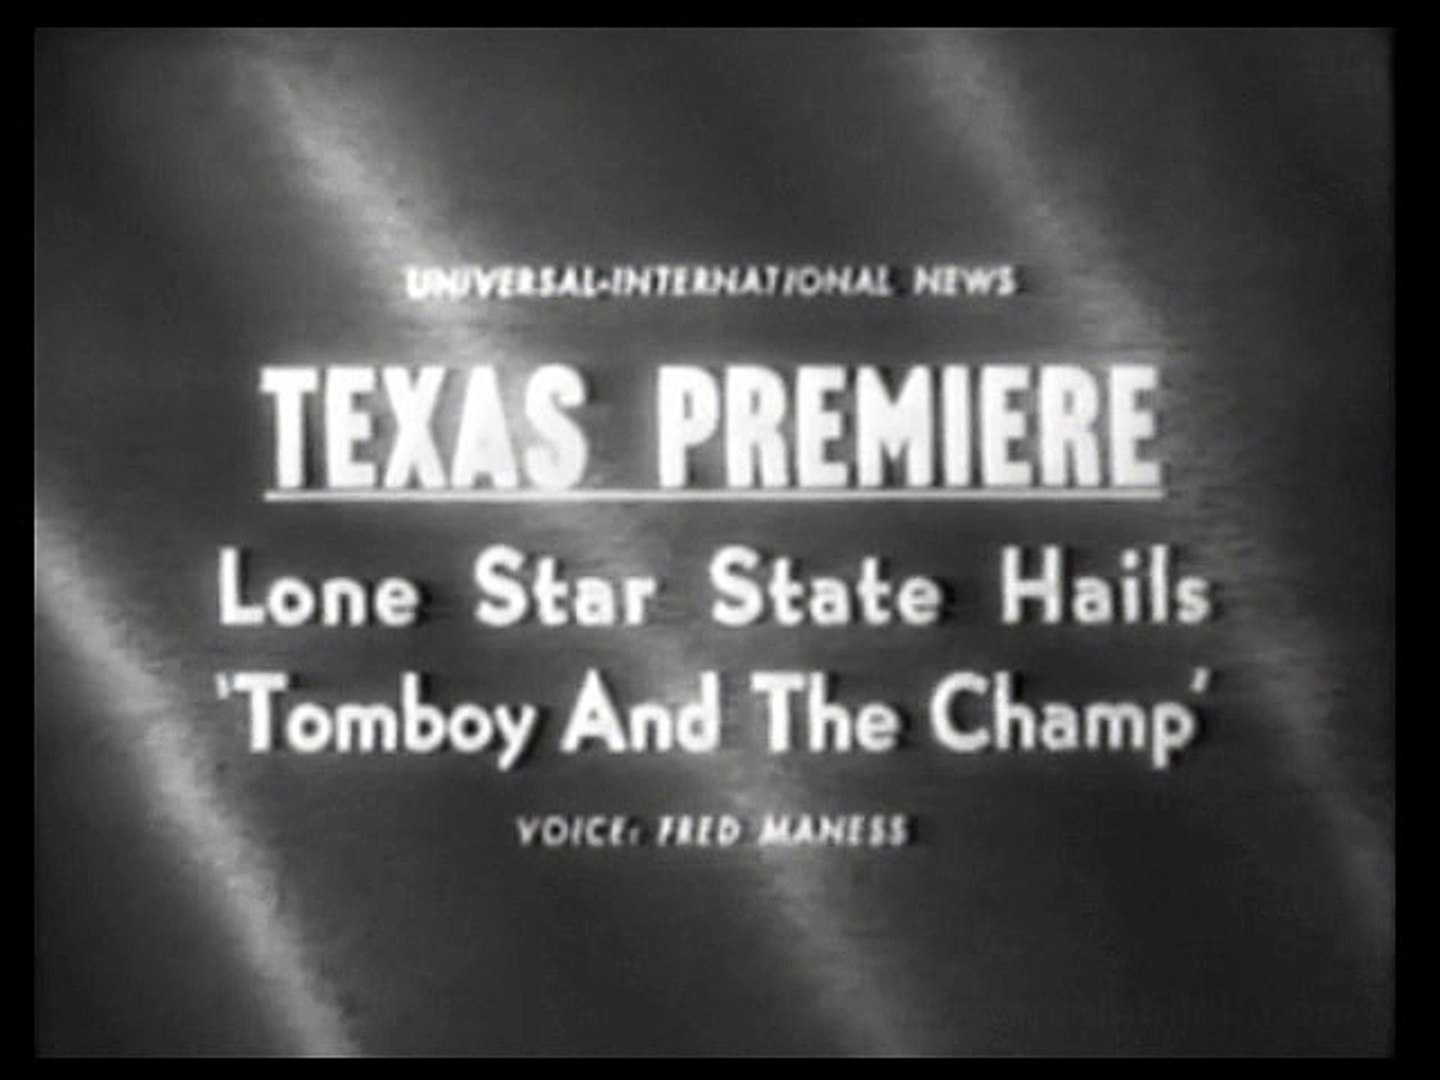 1961 TOMBOY AND THE CHAMP PREMIERE - REX ALLEN